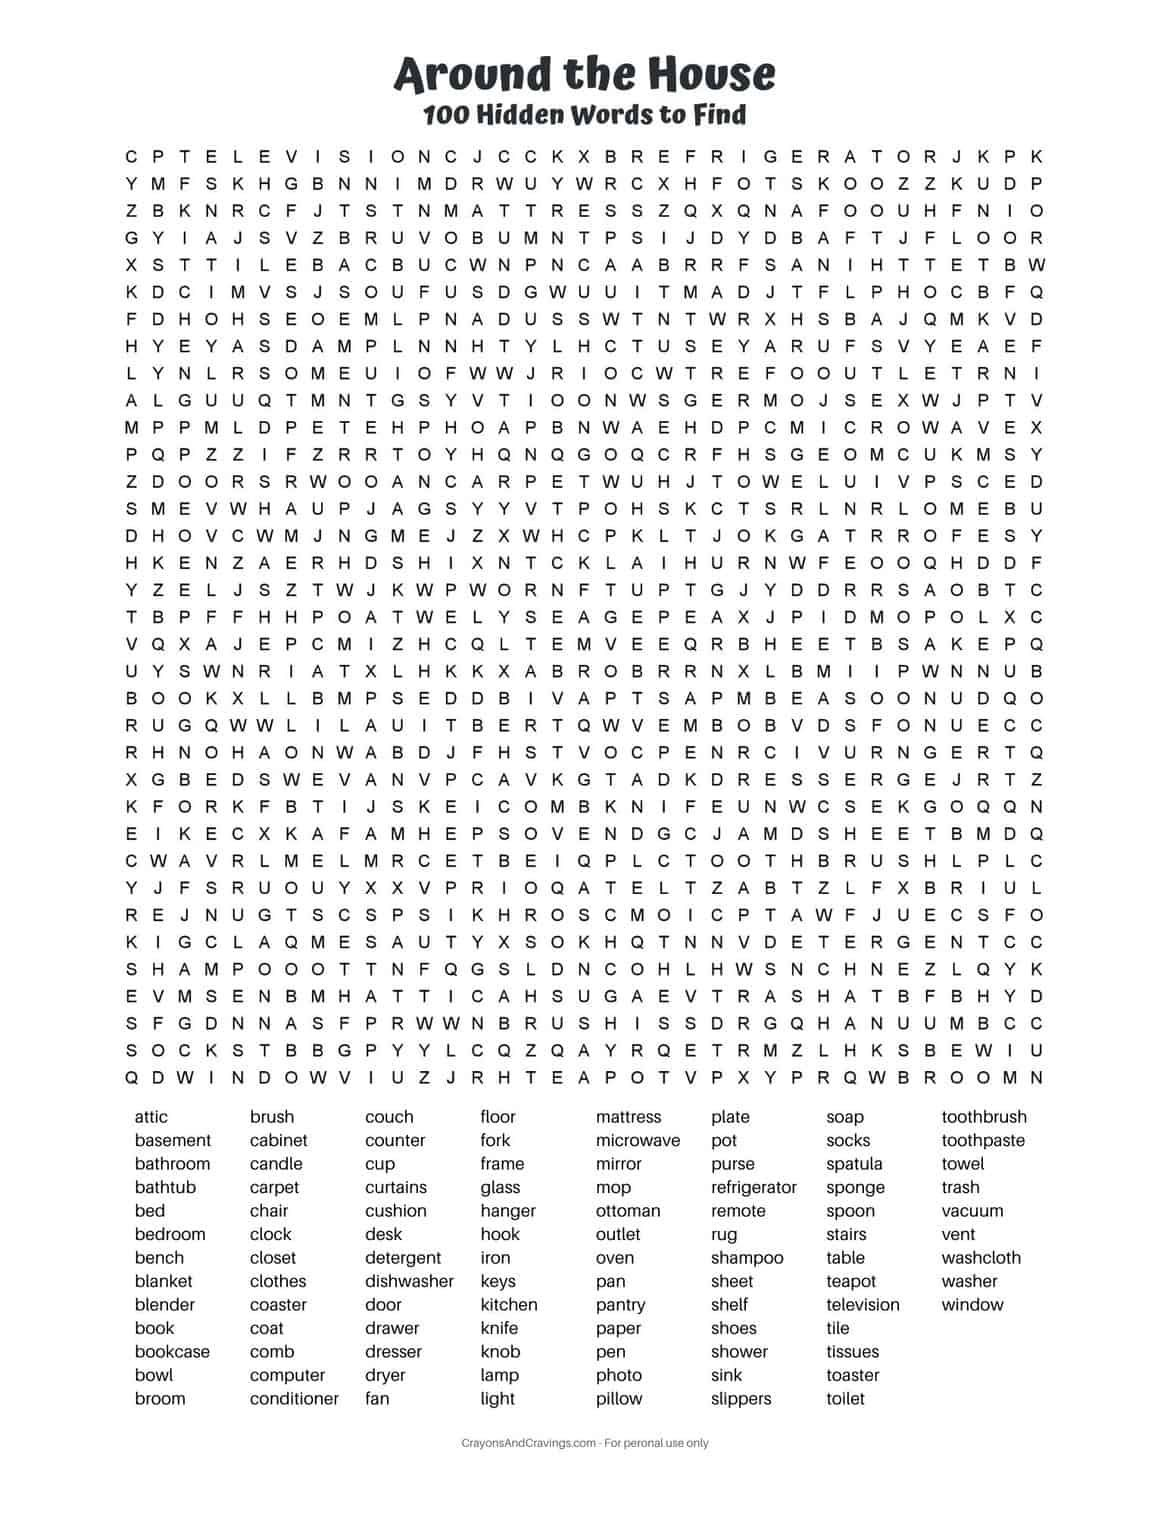 This 100 Word Word Search Is The Epitome Of A Hard